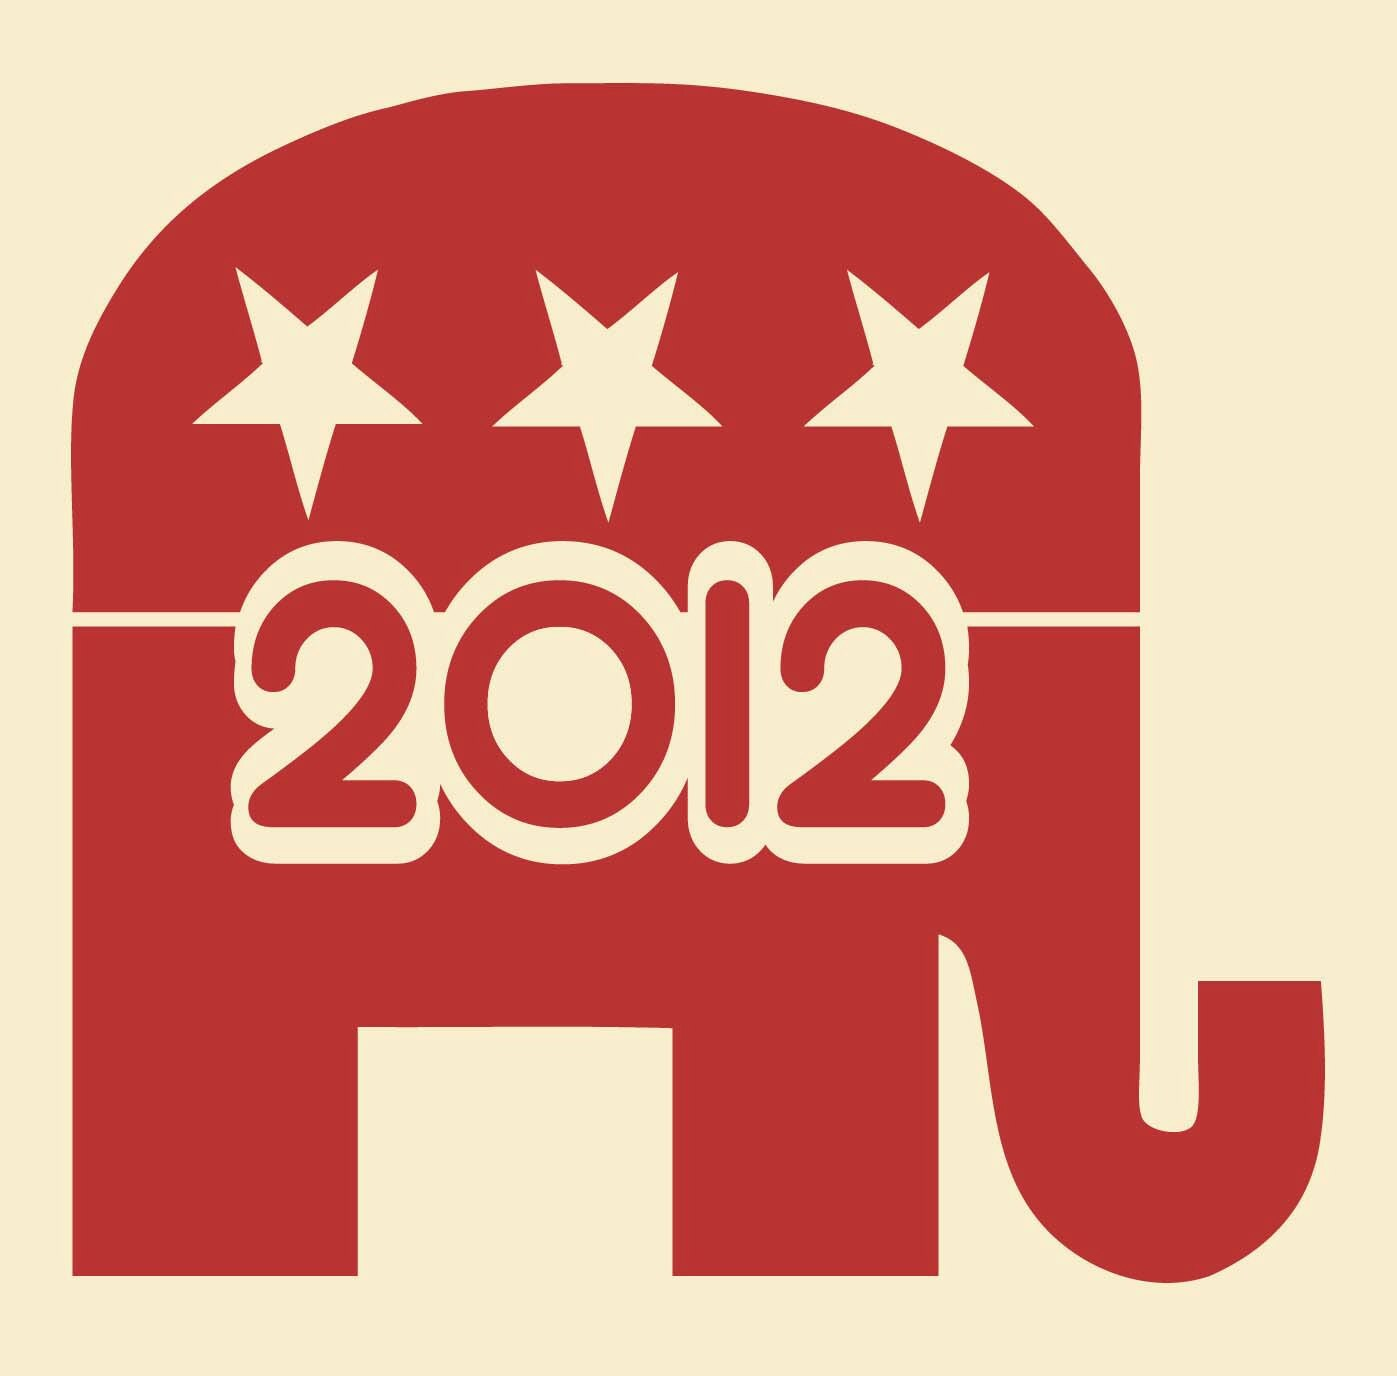 Republican Elephant 2012 Political Vinyl Sticker Decal